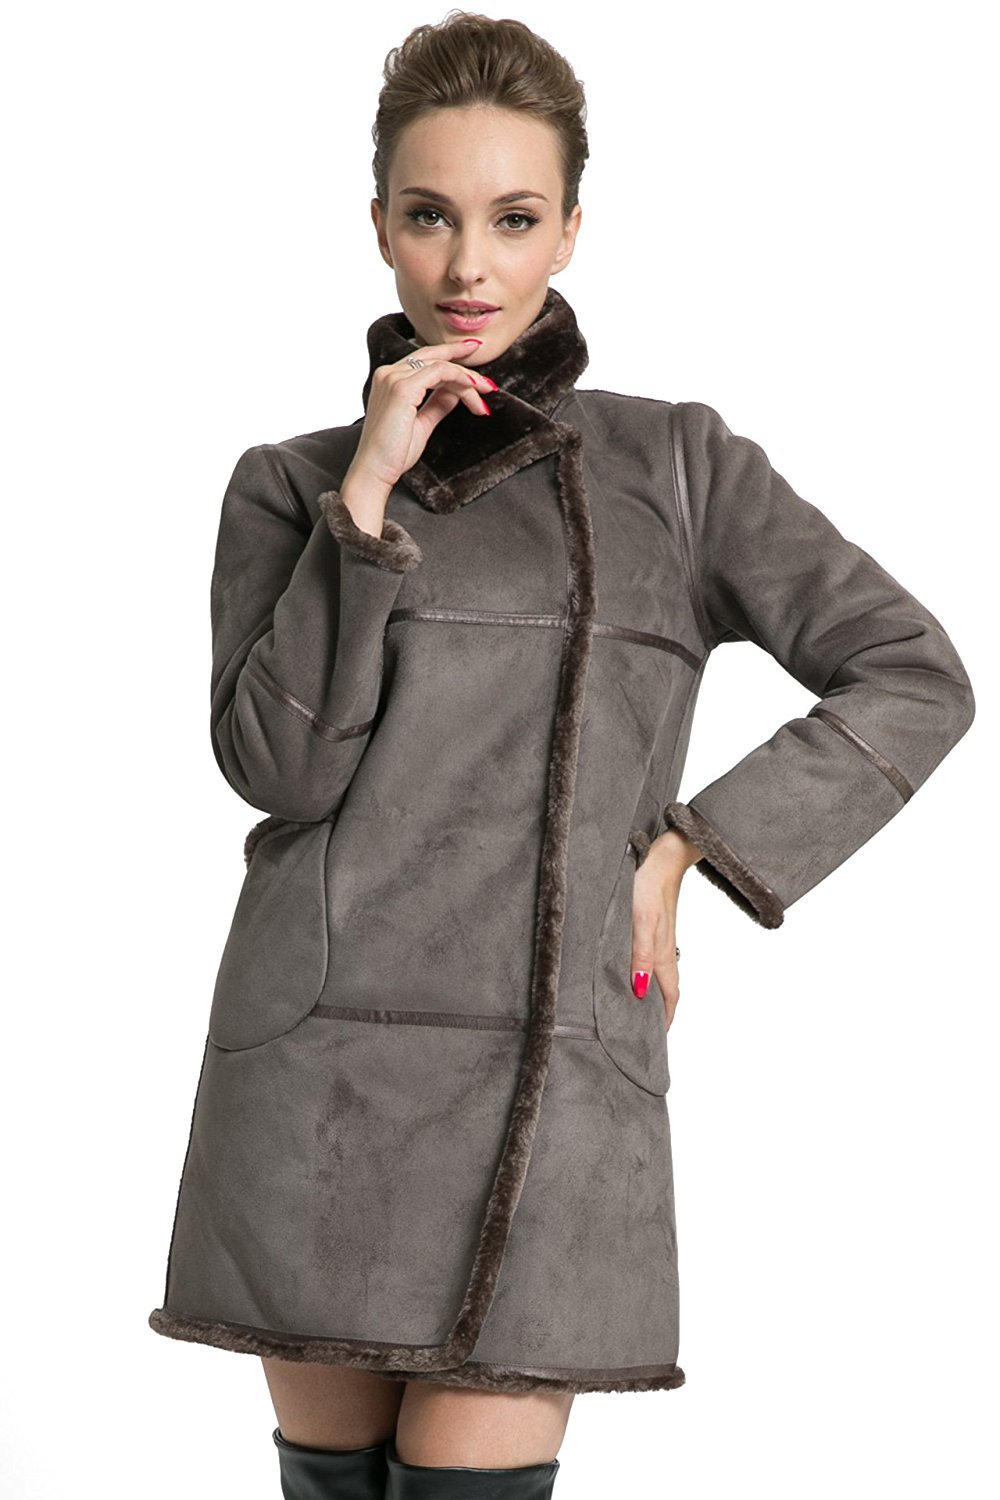 Ovonzo Women's Winter Style Soft Faux Suede Leather Pea Coat Hip Length Grey Size S by OVONZO